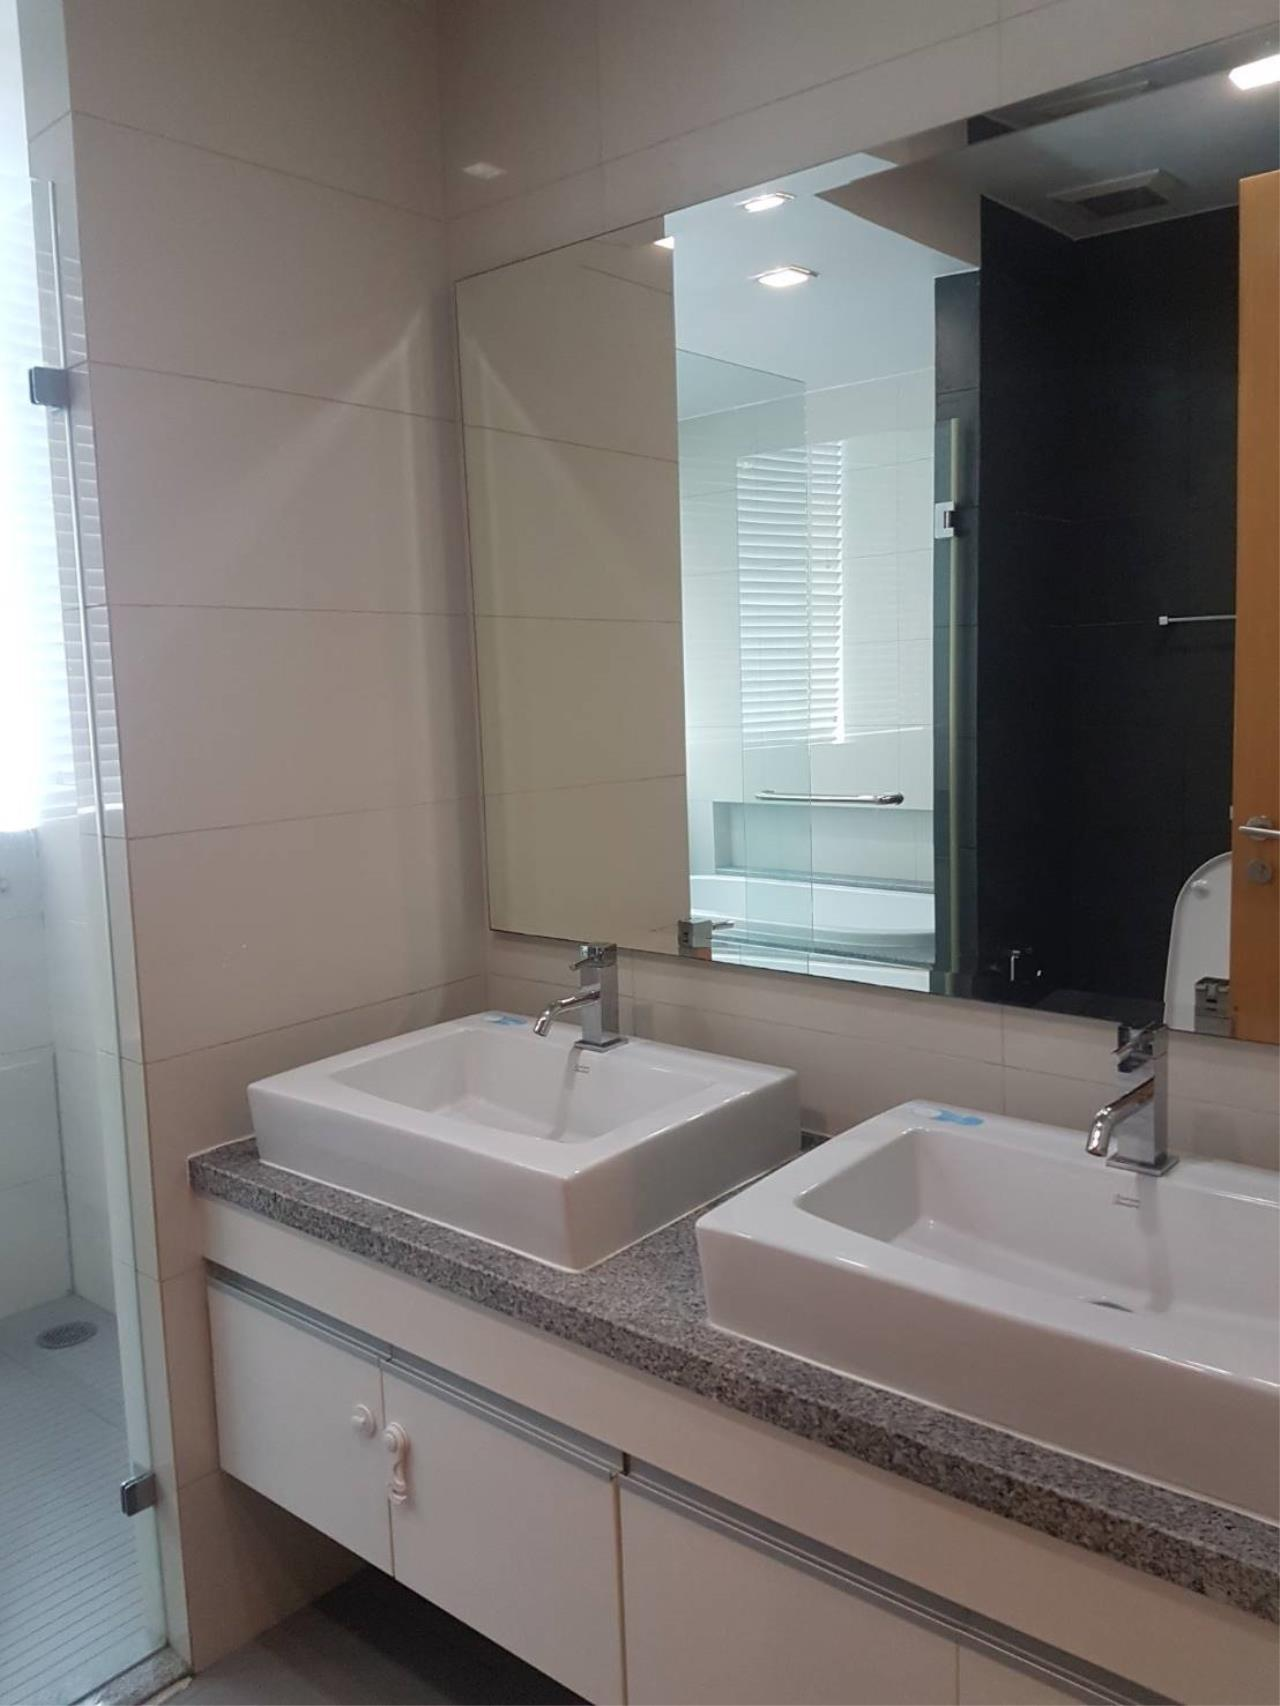 RE/MAX All Star Realty Agency's Millennium Residence for sale/rent (BTS Asoke) 14